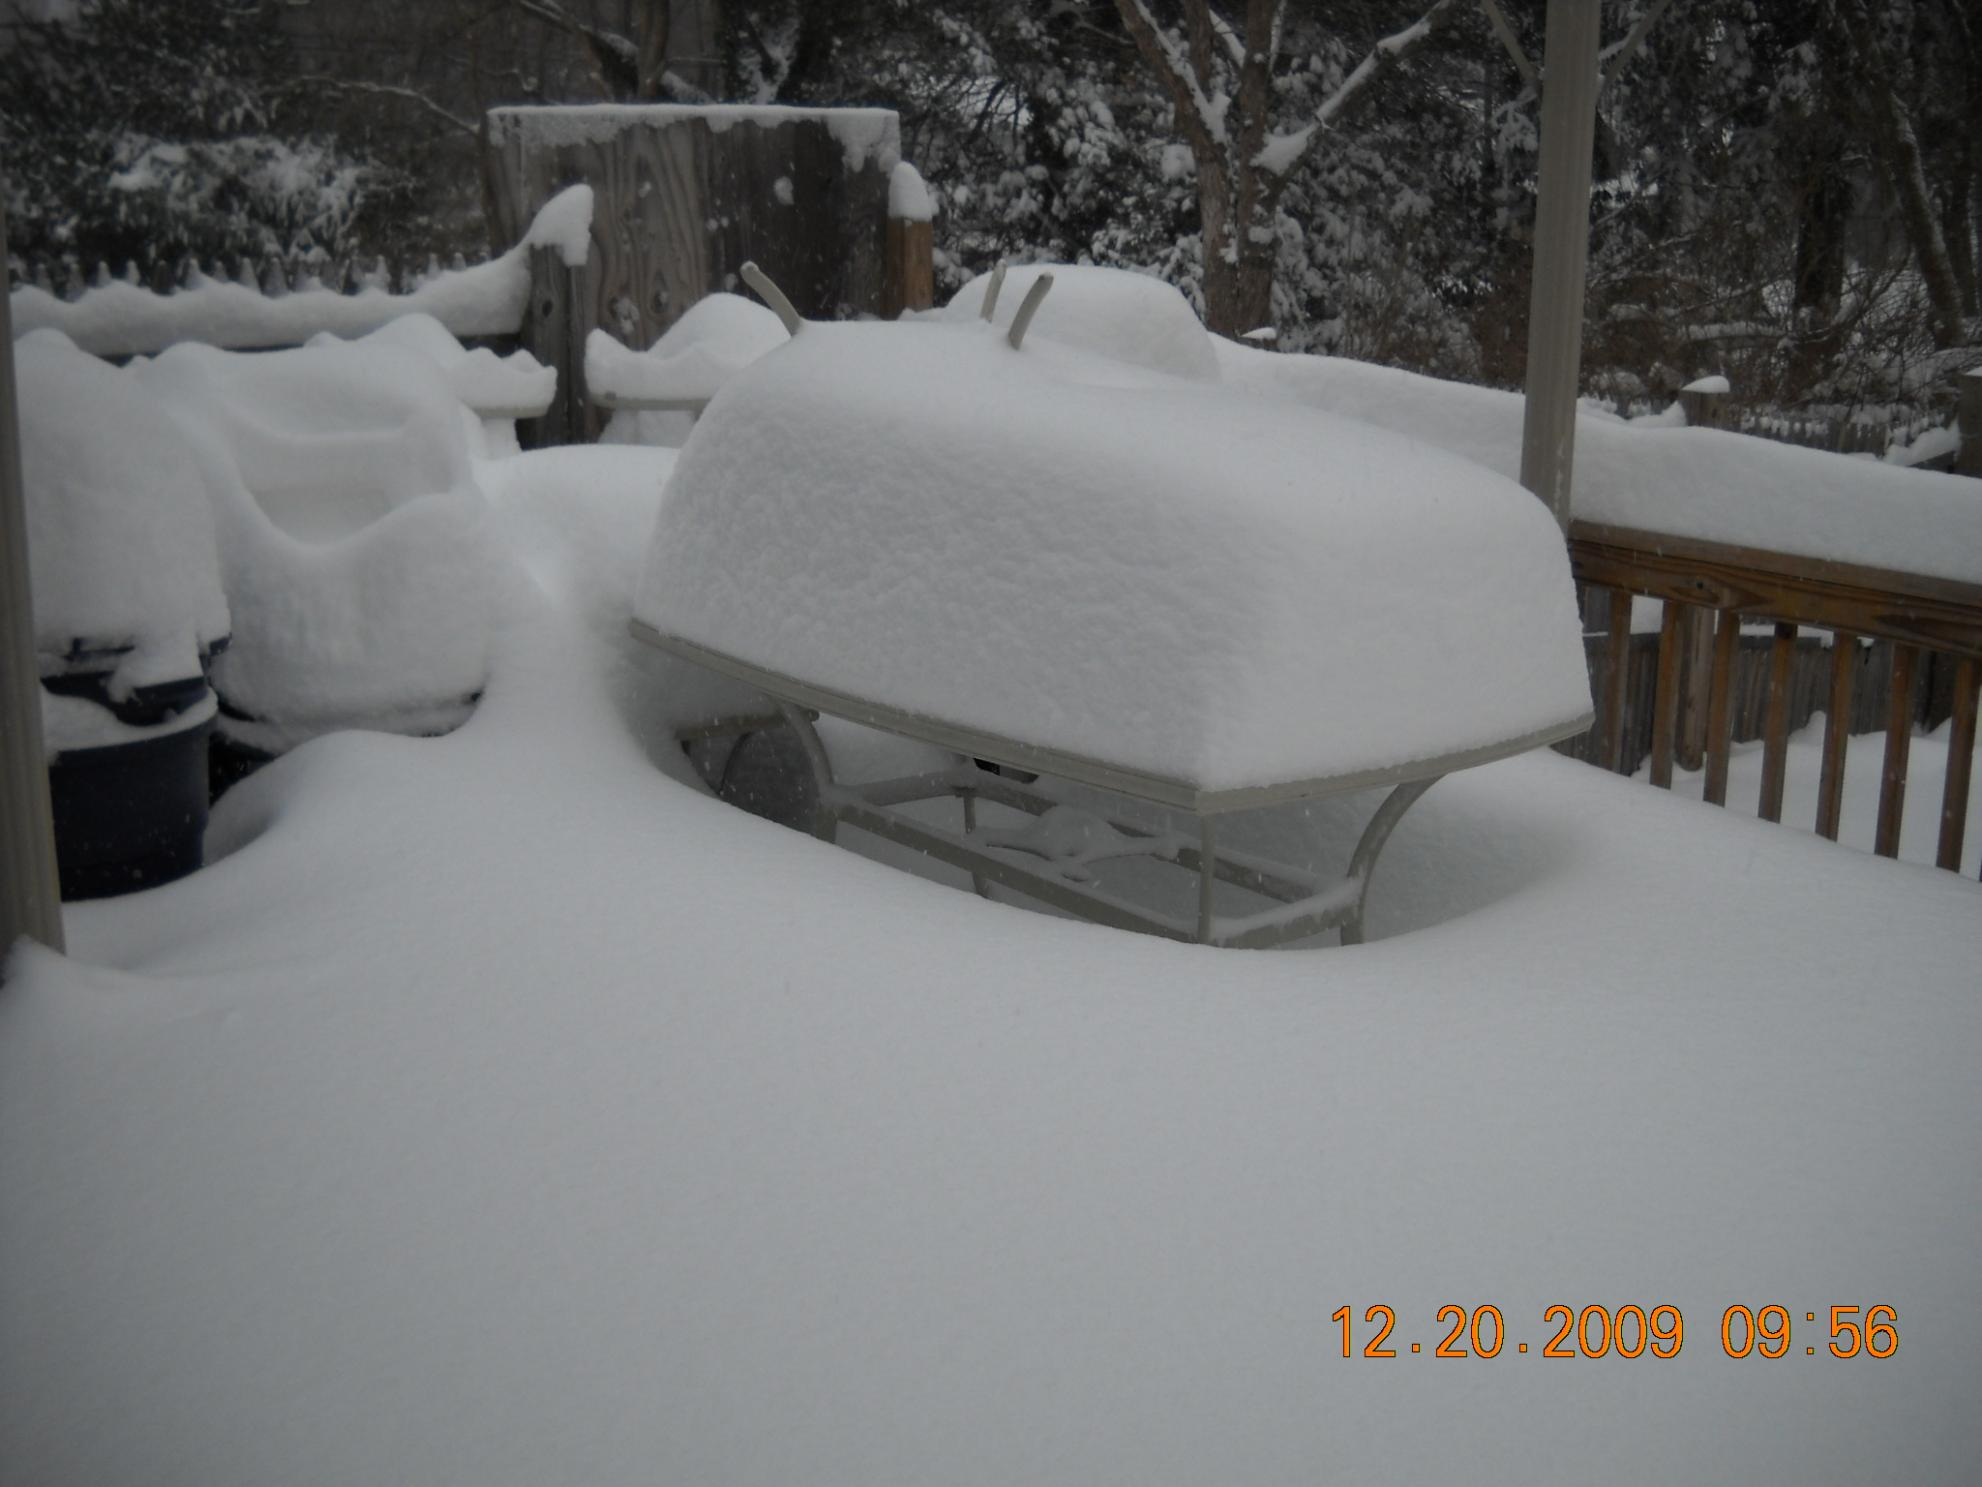 How about this winter Christmas weather?-winter-storm-12-20-09-013.jpg